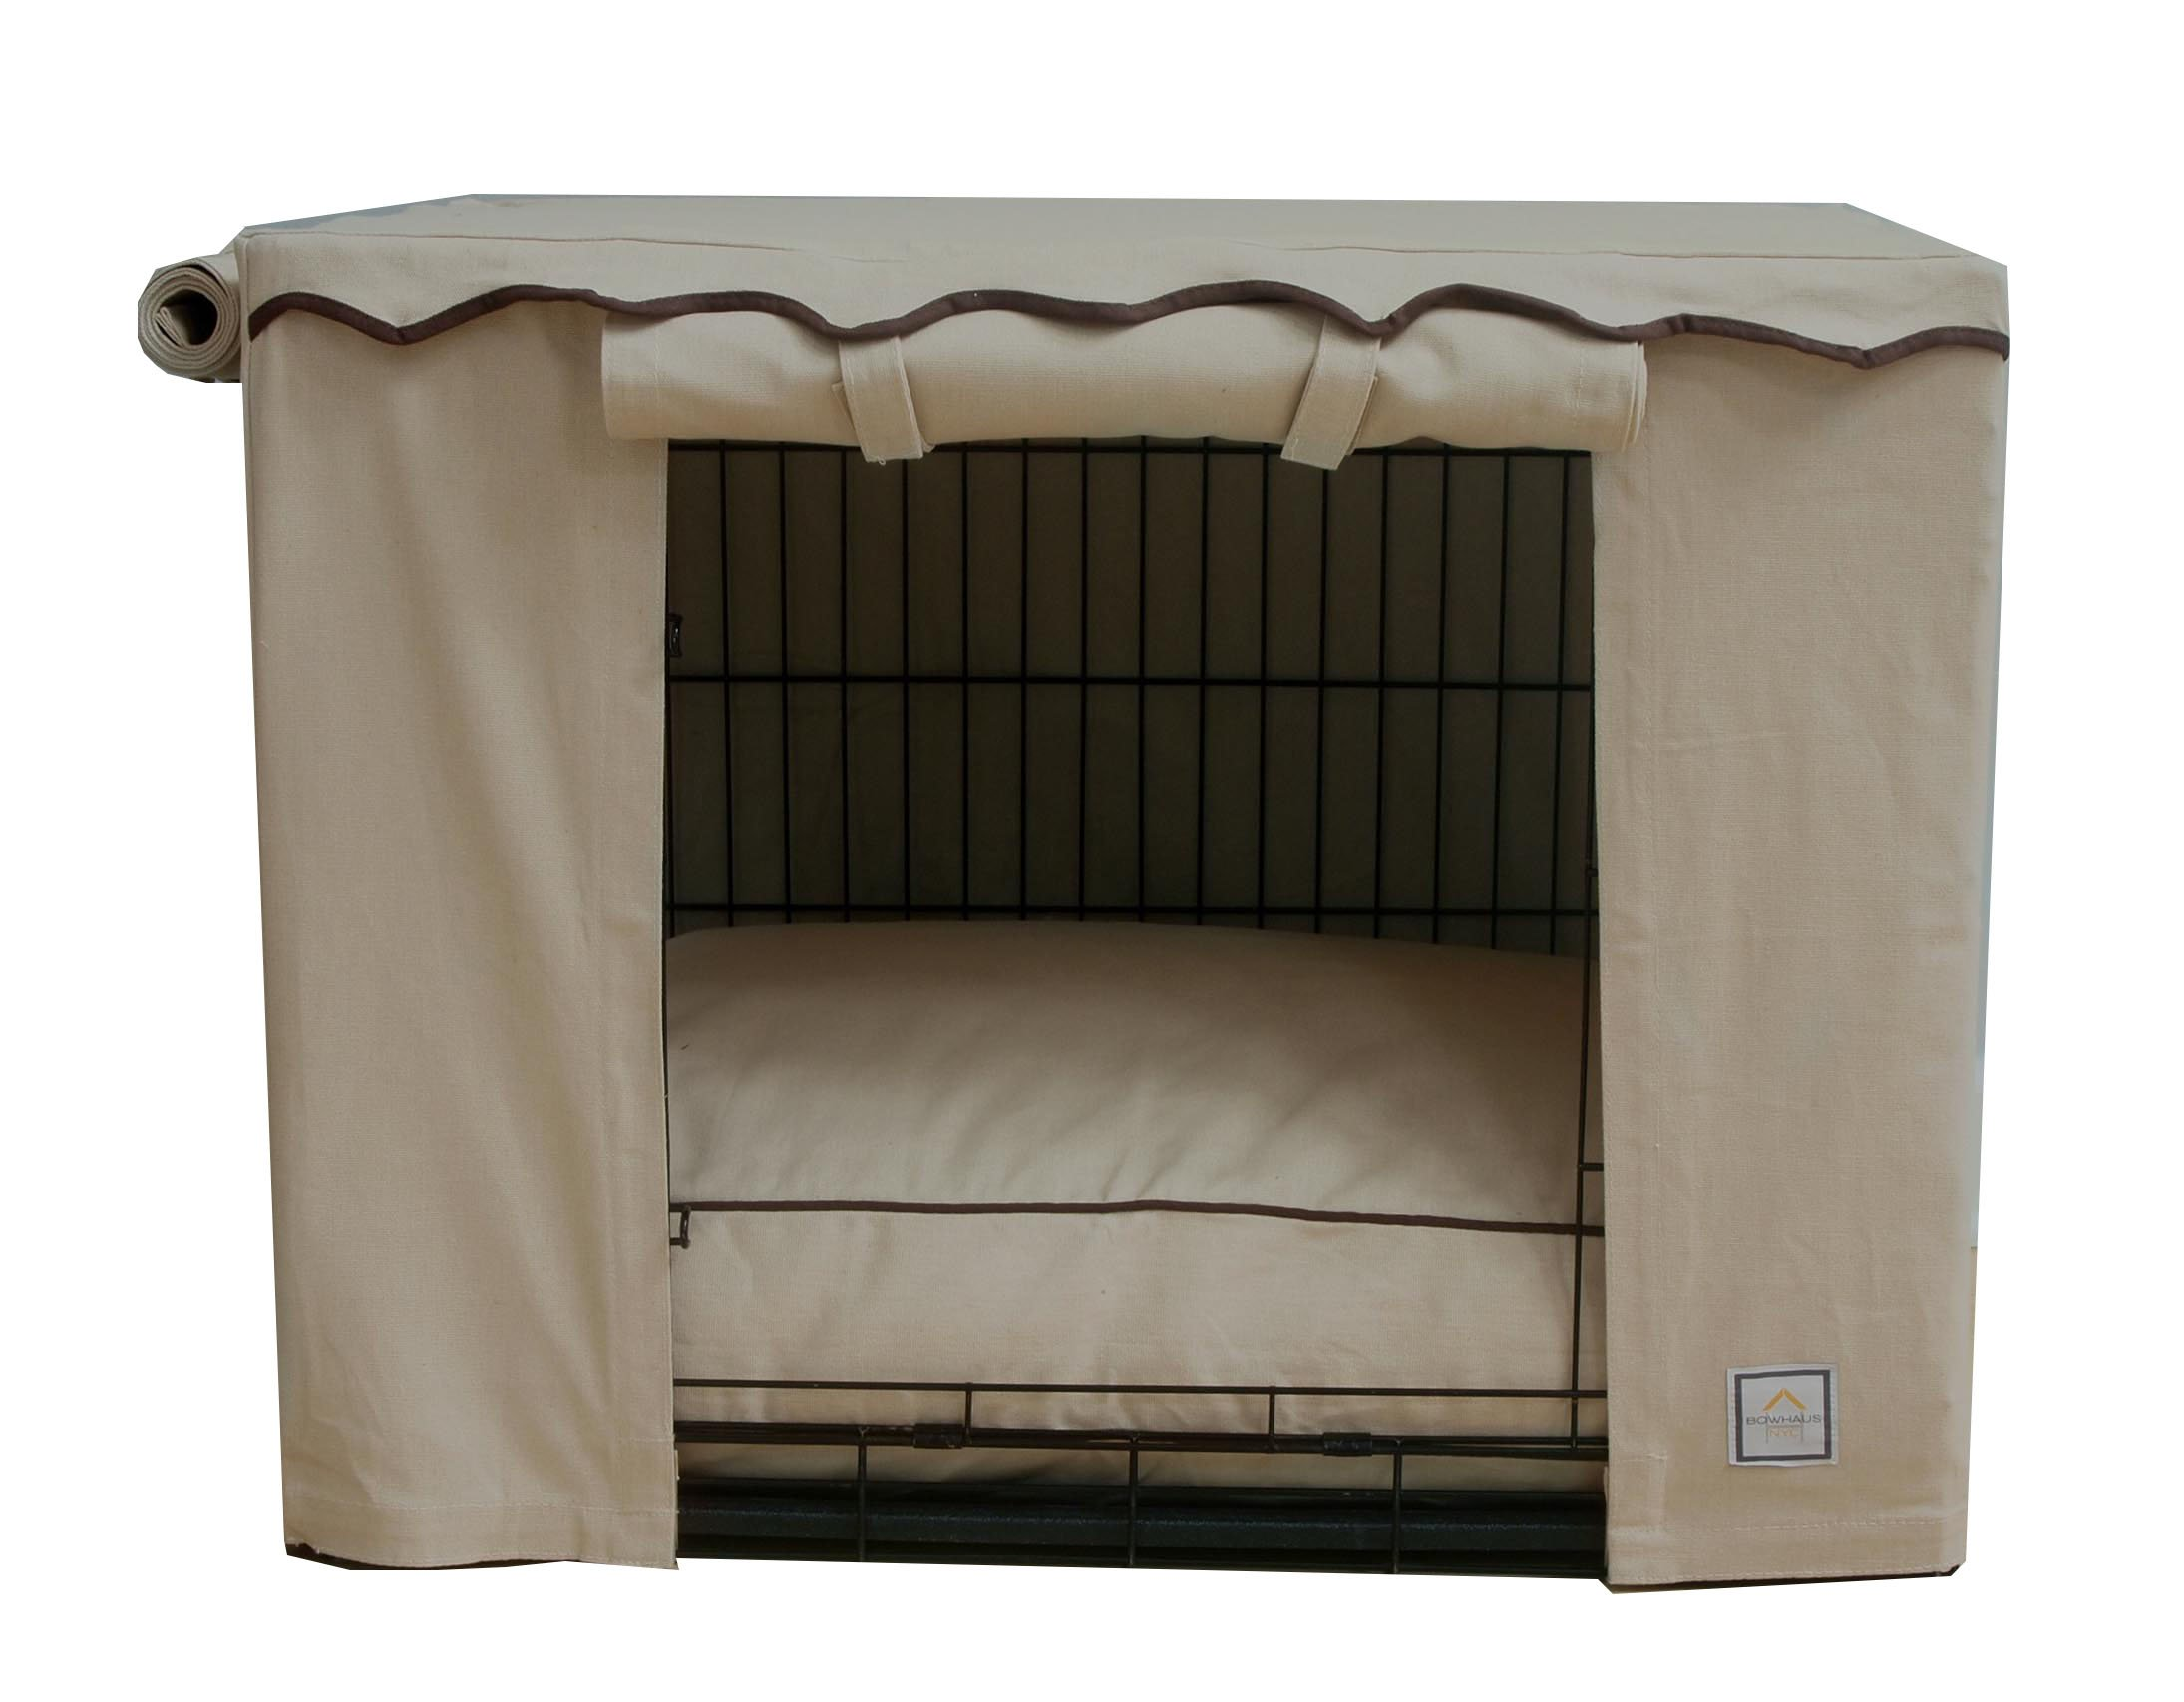 BowhausNYC Stone Beige Crate Cover, Tan/Brown